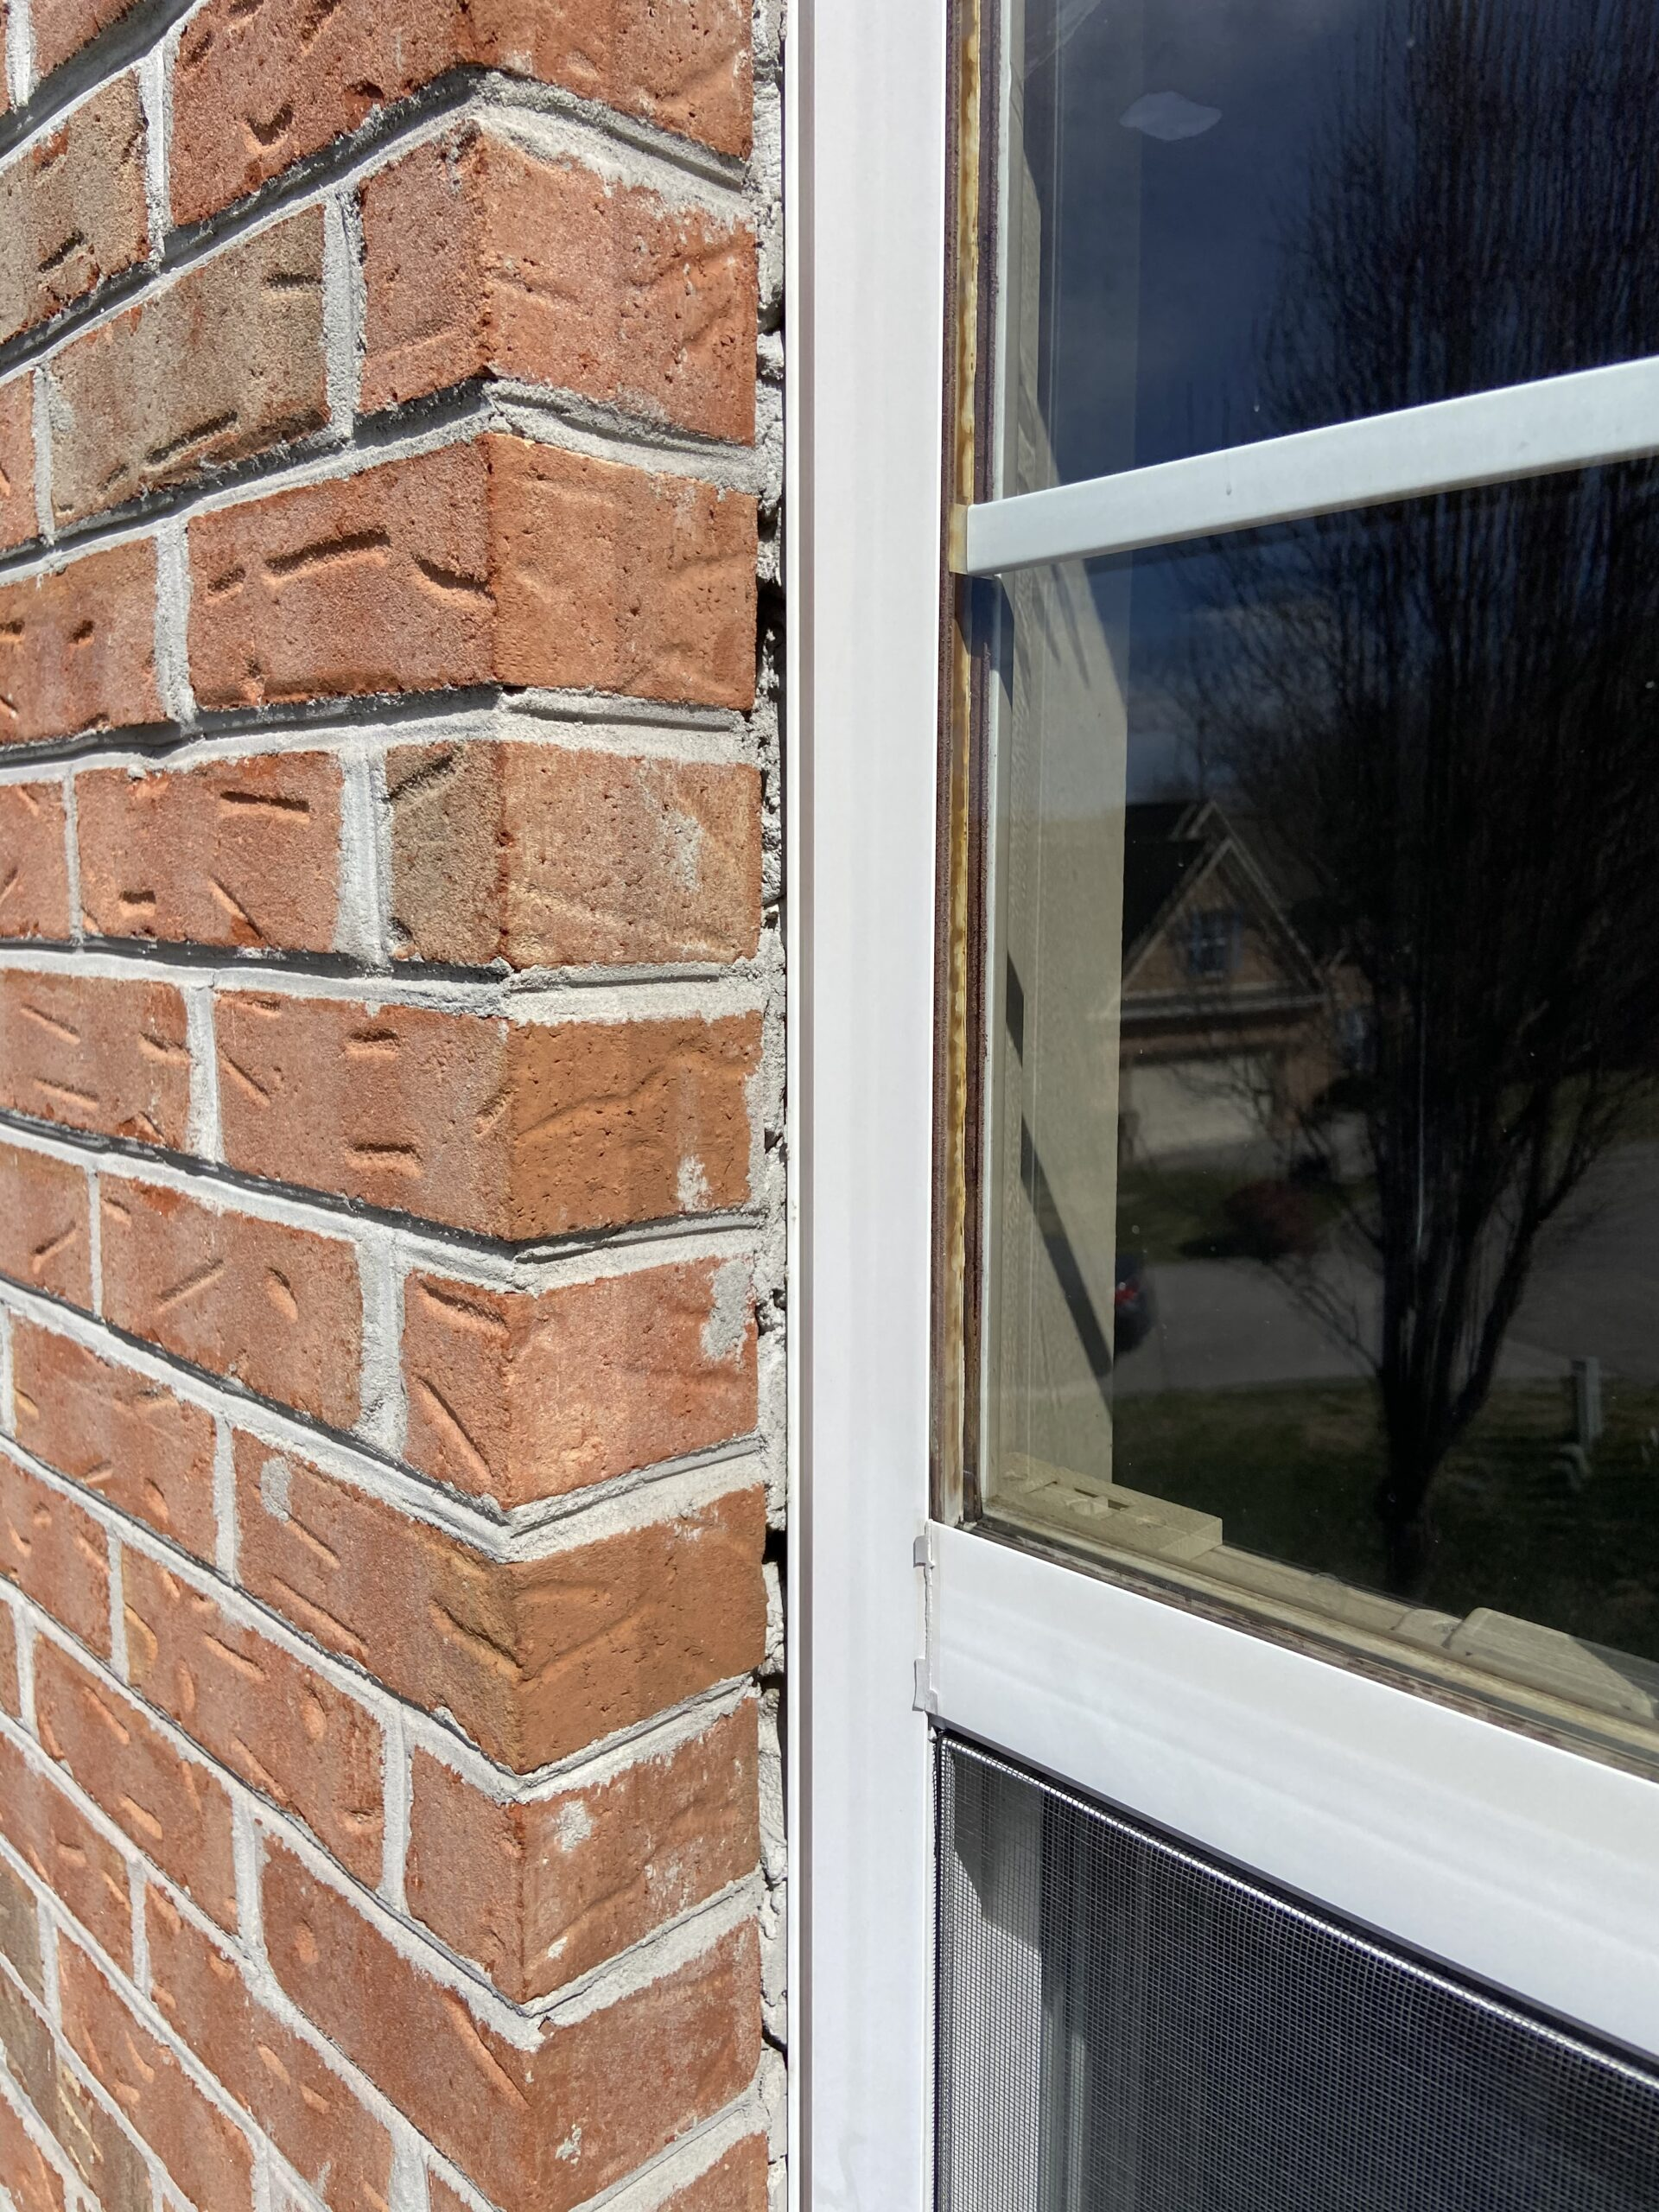 Huge gaps between brick siding and a vinyl window